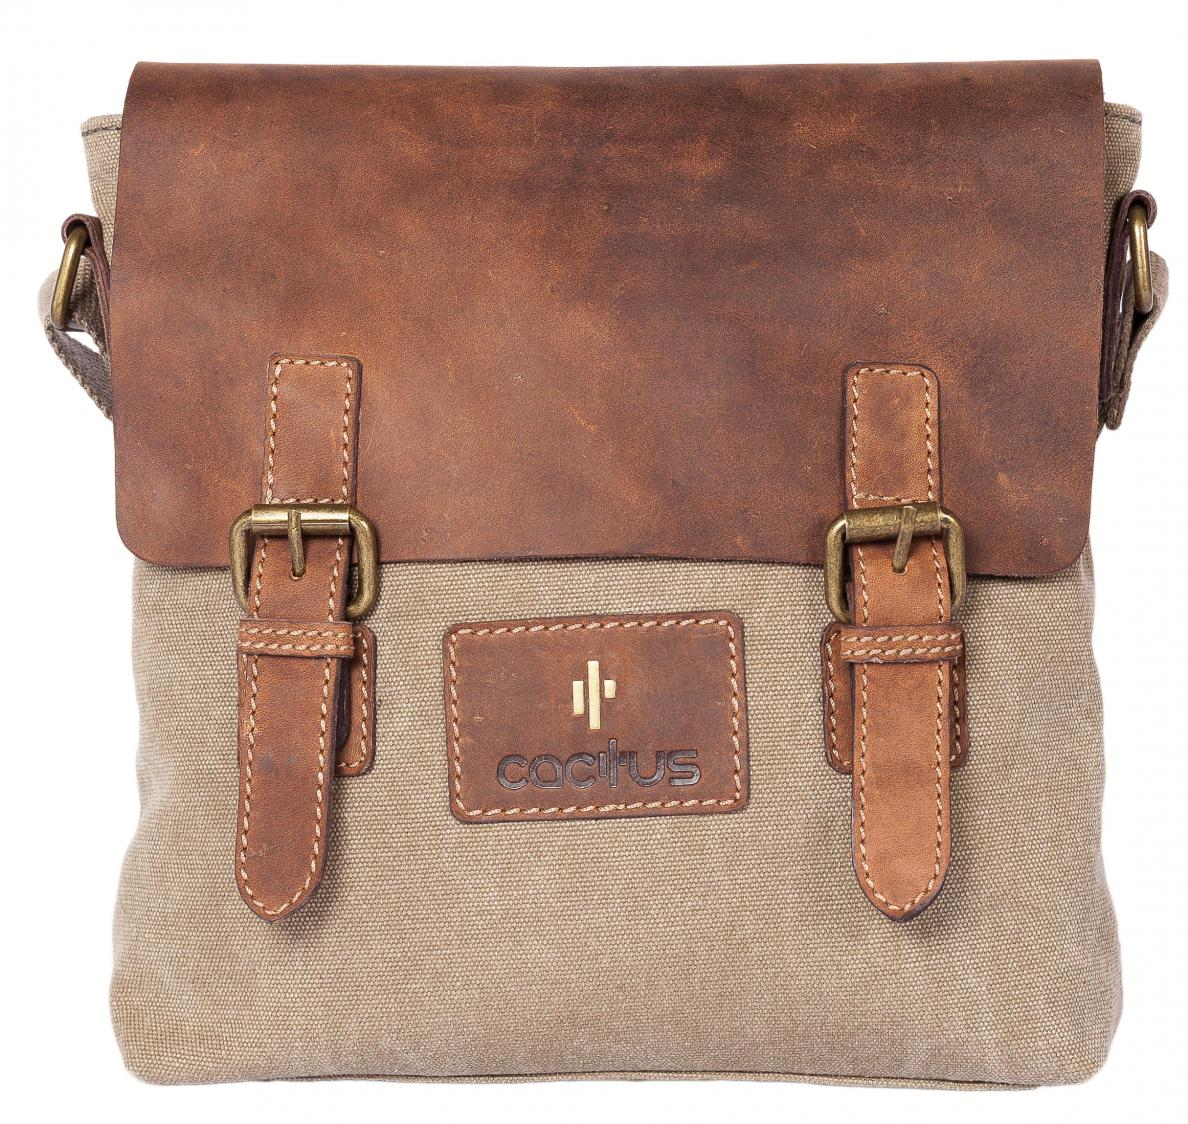 Cactus Cross Body Bag with Leather Flap in Khaki